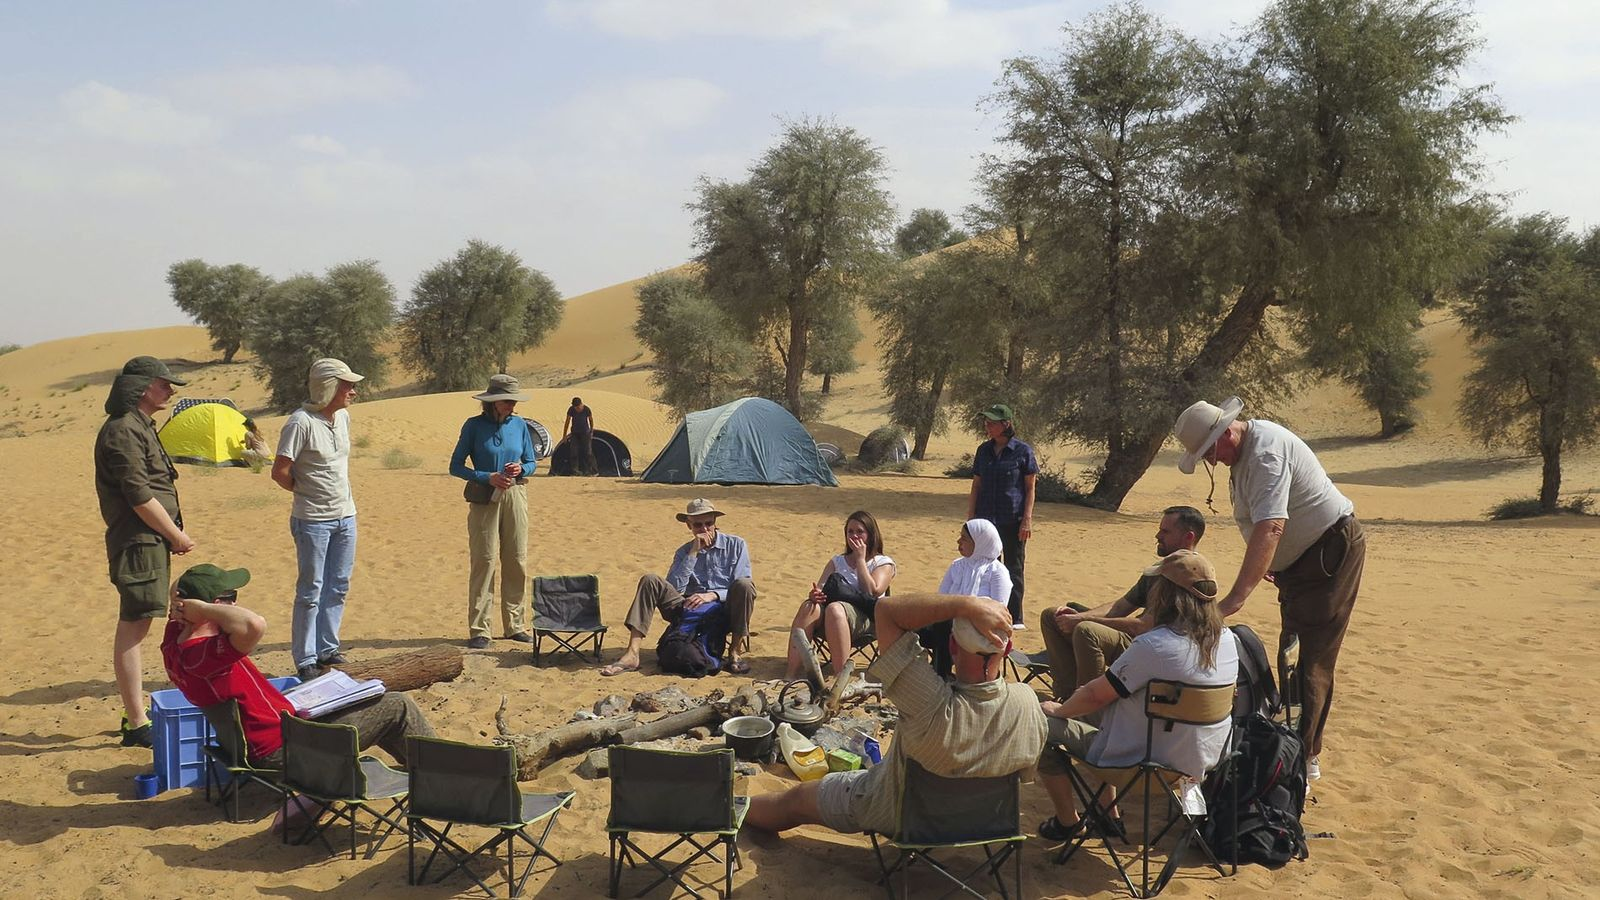 Campsite of a Biosphere Expedition group